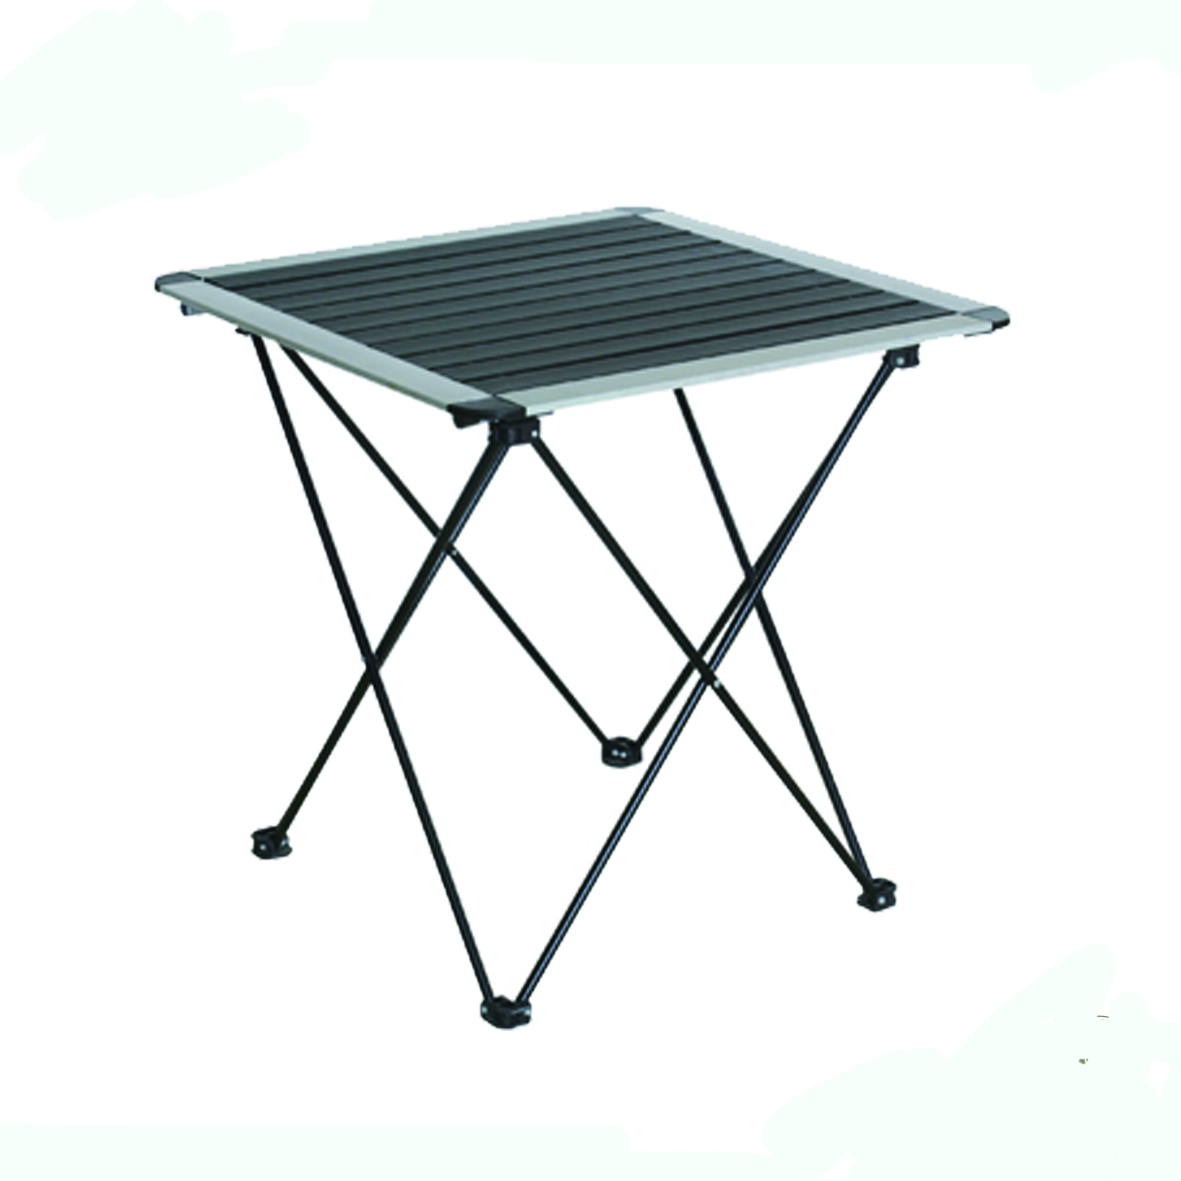 - Roll Up Top Small Aluminum Outdoor Camping Folding Table - Buy